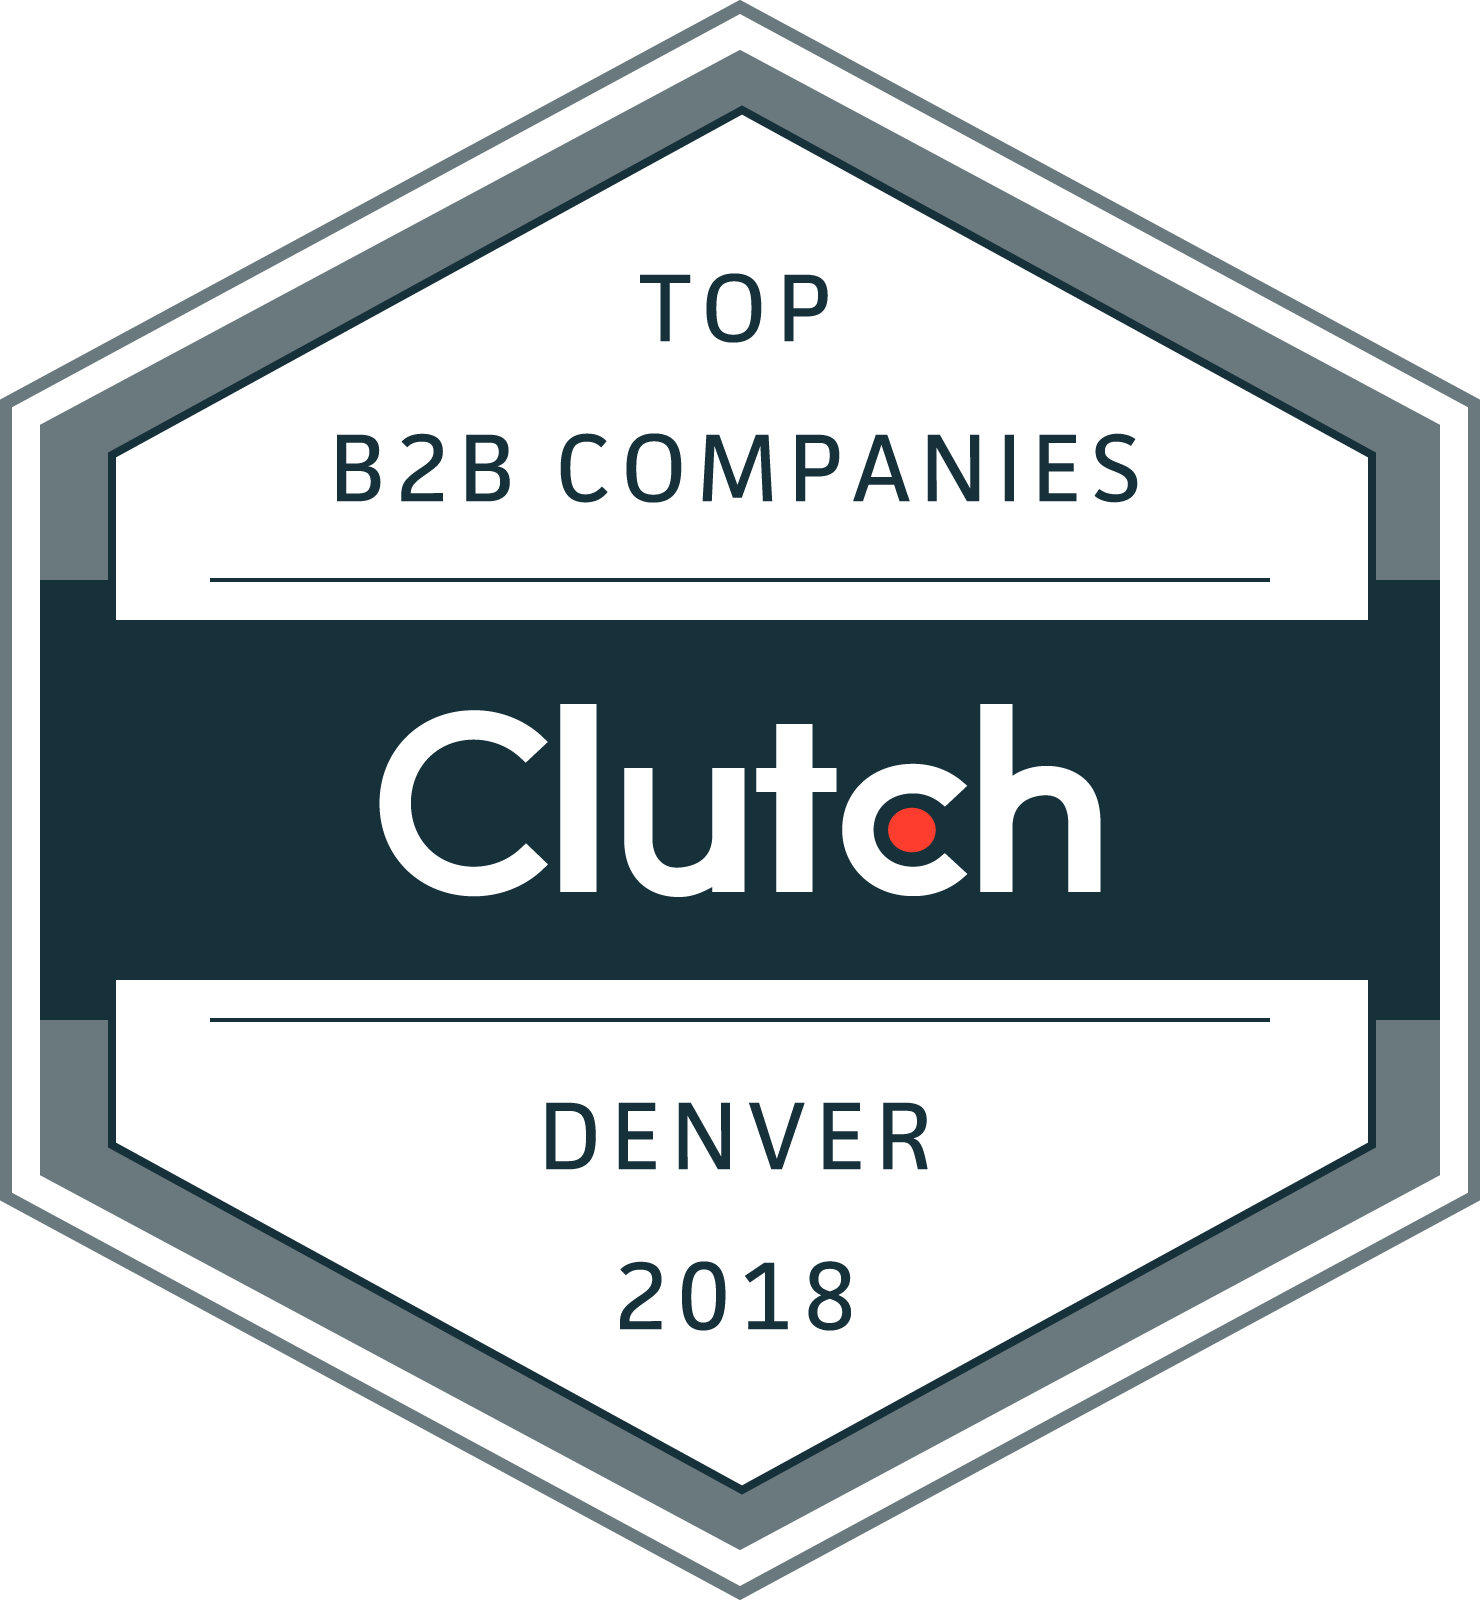 Clutch Top B2B Companies Denver 2018 Award